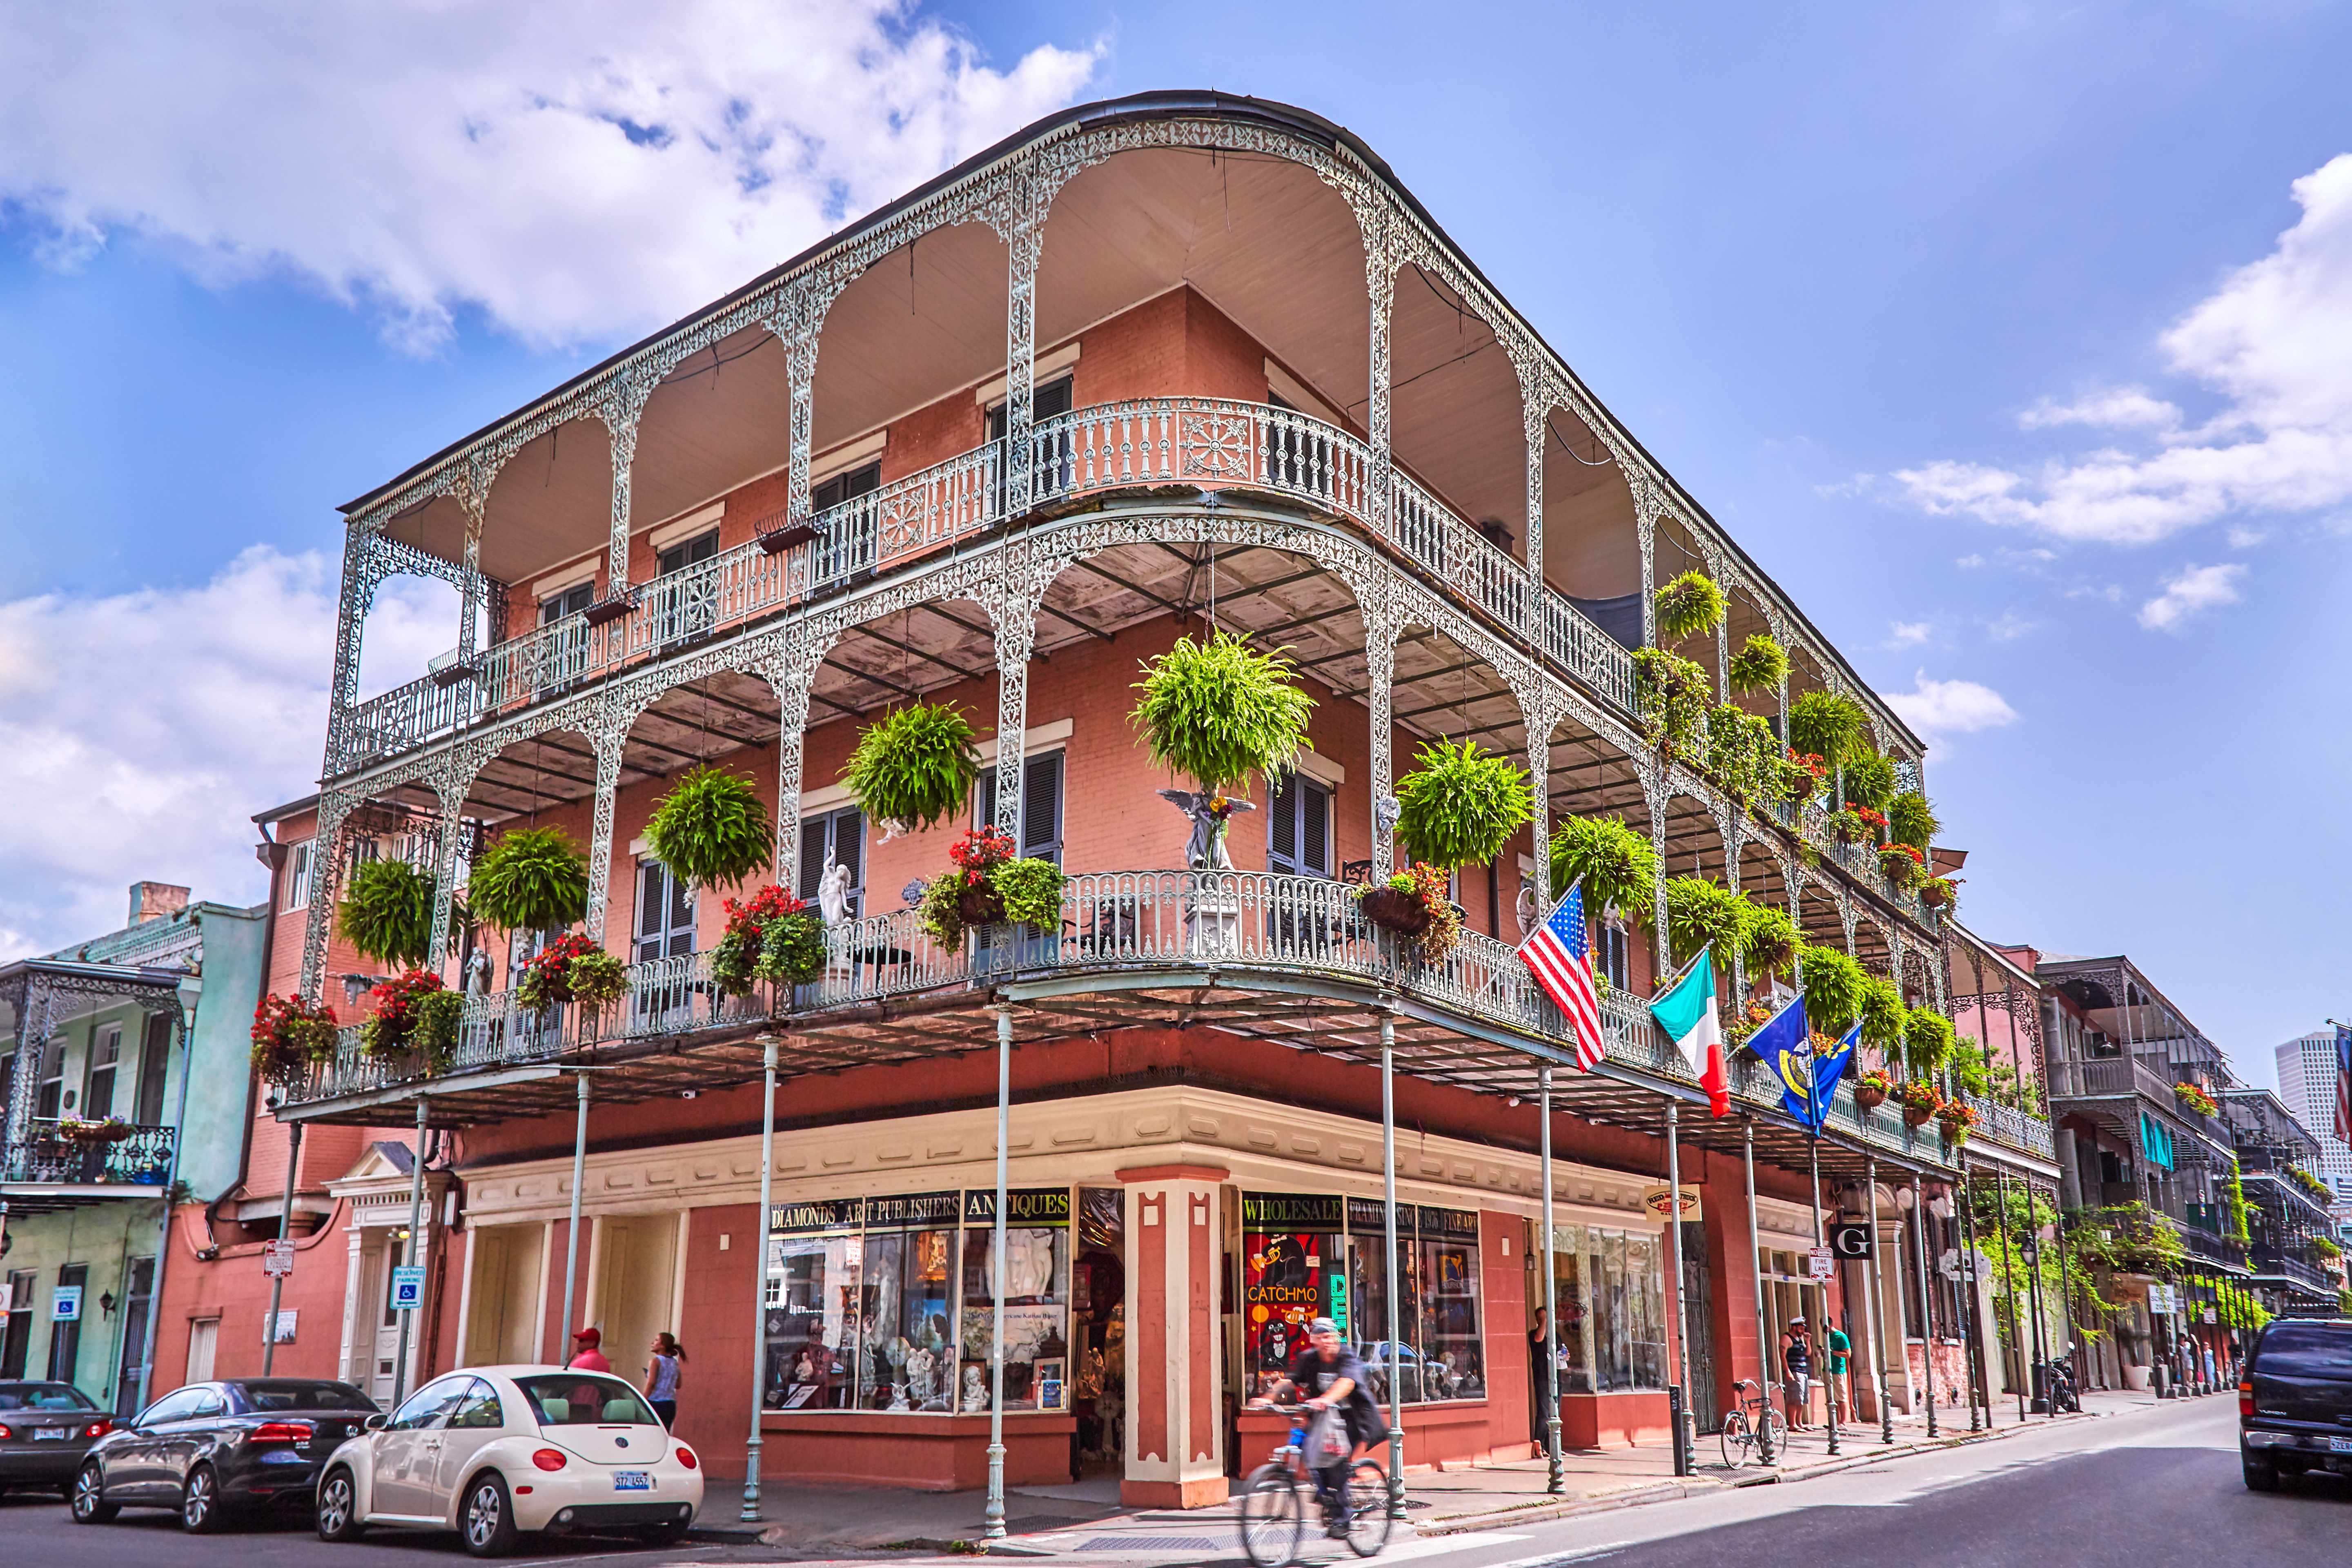 Wrought iron lace adorns many old buildings and houses in the streets of New Orleans. (Getty Images)